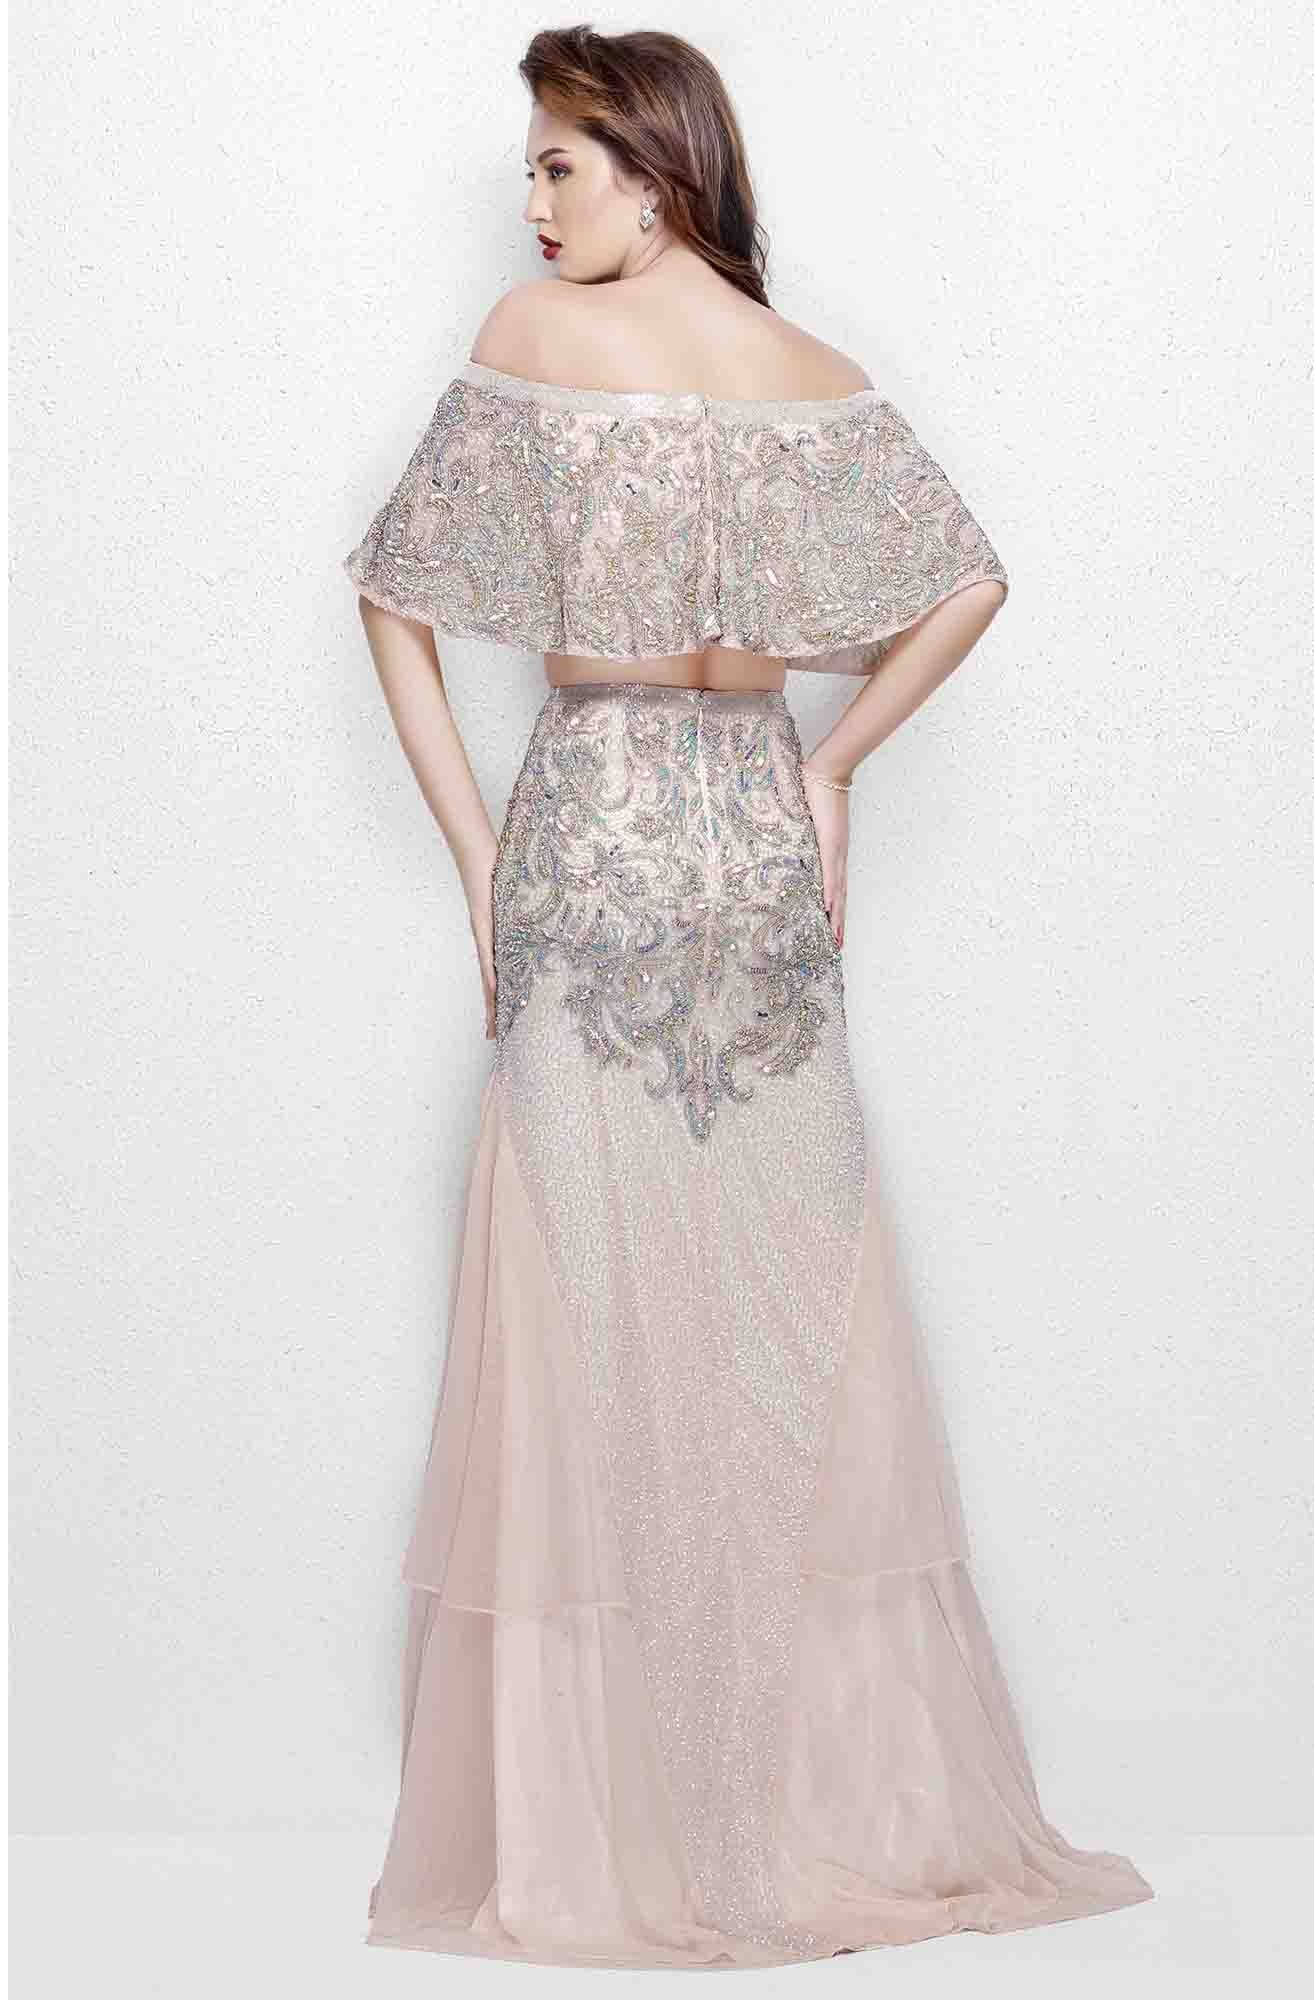 Primavera - 3034 Two Piece Embellished Dress in Pink